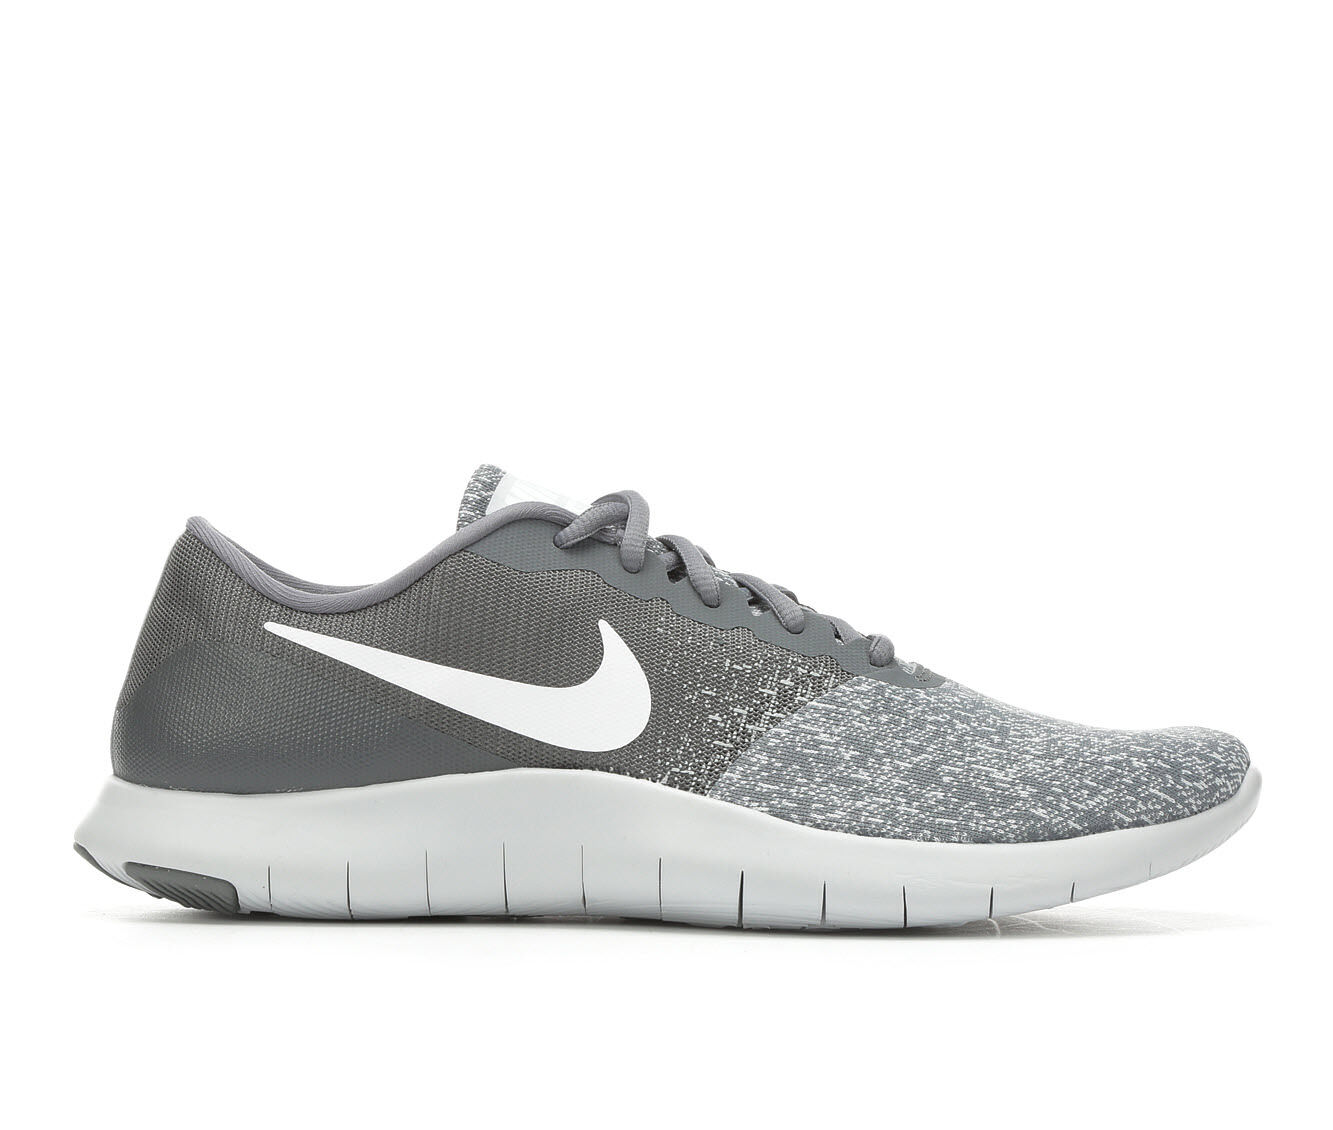 bdd4faefc3 ... get mens nike flex contact running shoes shoe carnival 1ab62 b2026